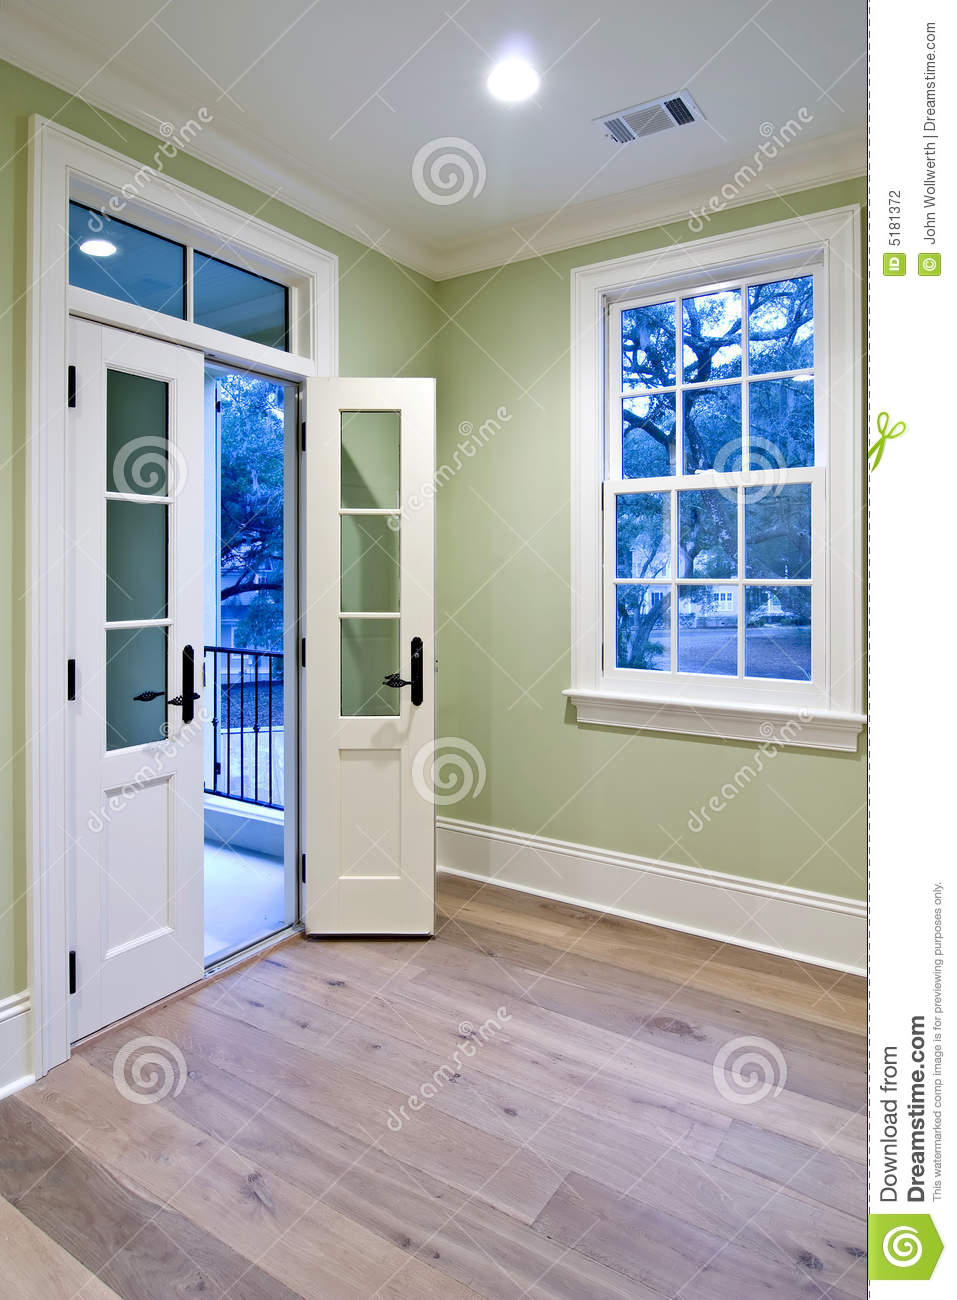 bedroom with double doors stock photography image 5181372